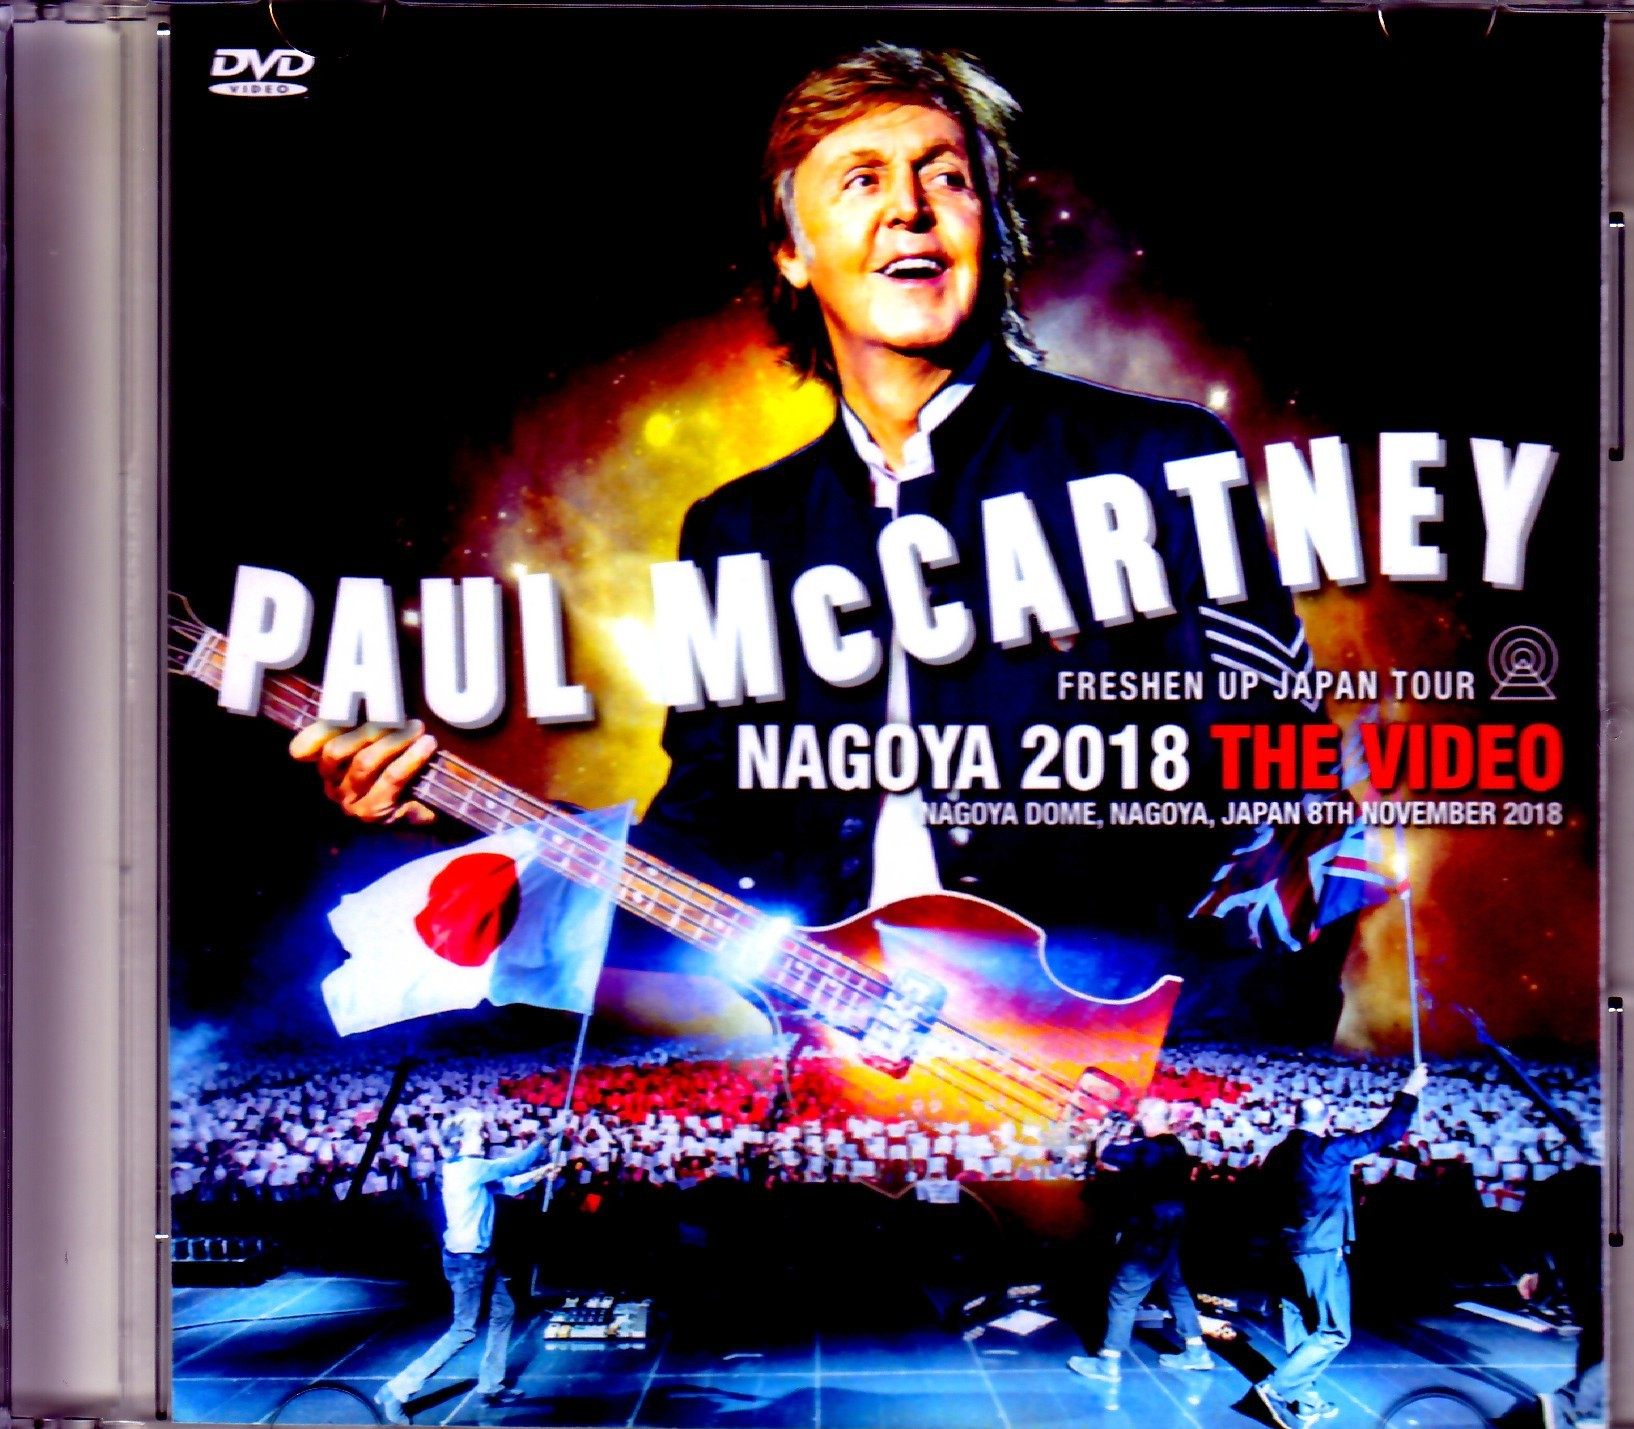 Paul McCartney ポール・マッカートニー/Aichi,Japan 2018 Another Seat Ver.